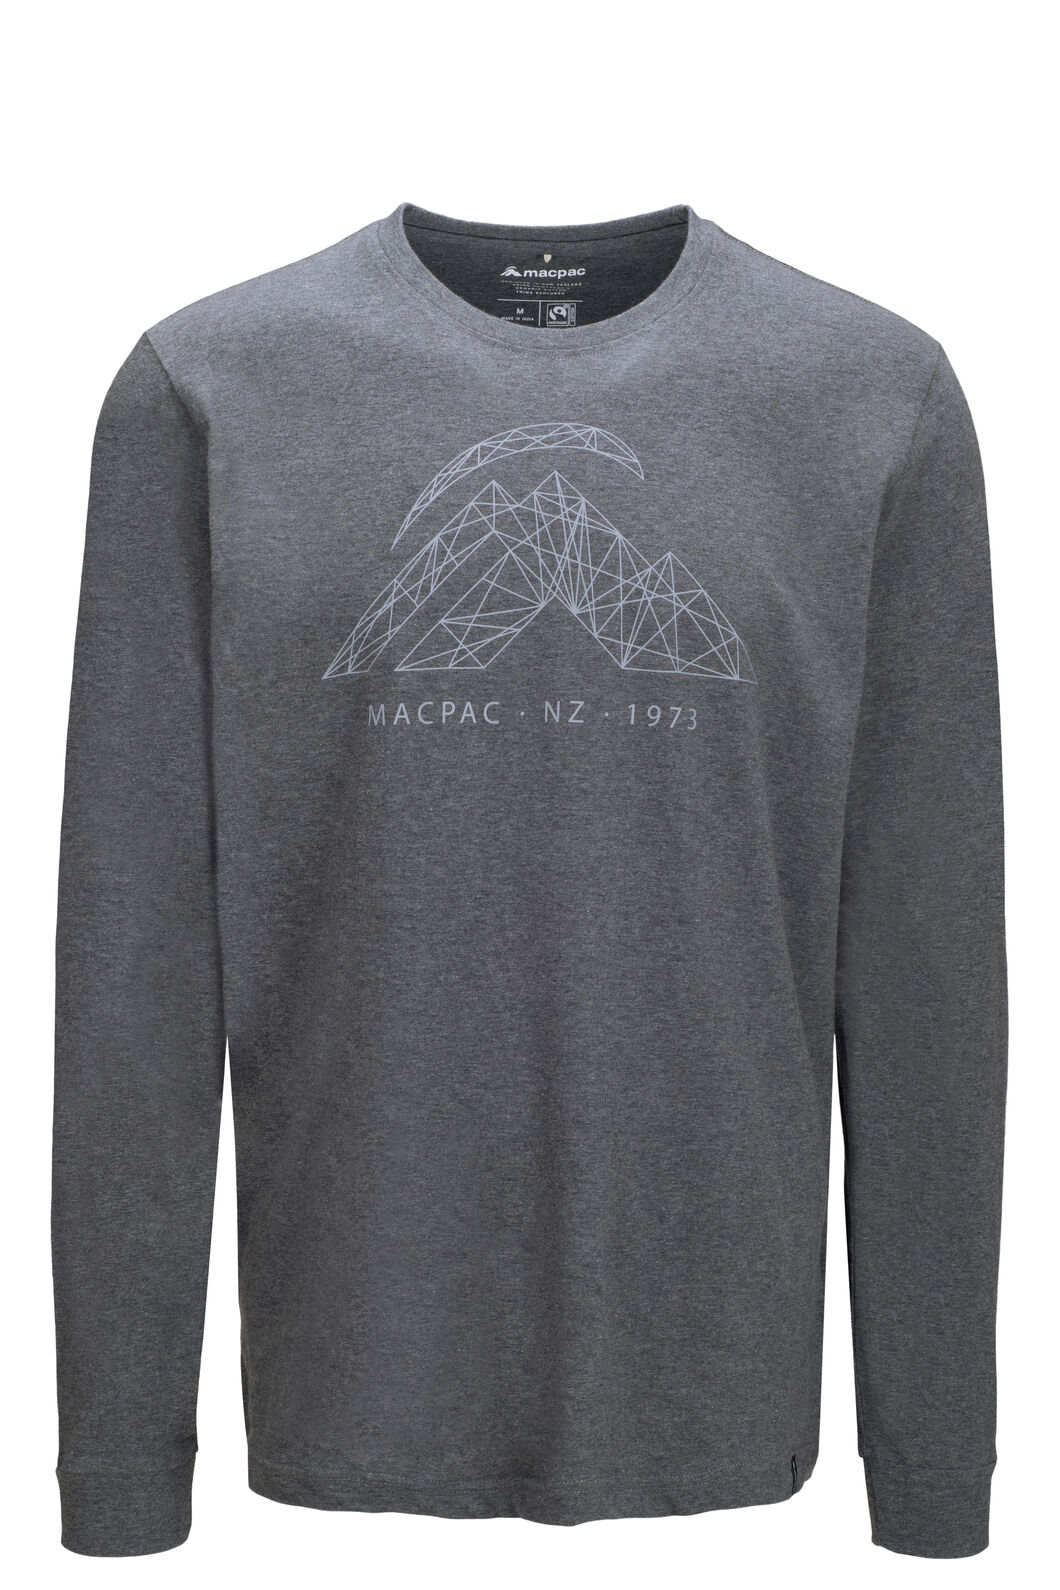 Macpac String Logo Fairtrade Organic Cotton Long Sleeve Tee — Men's, Charcoal Marle, hi-res